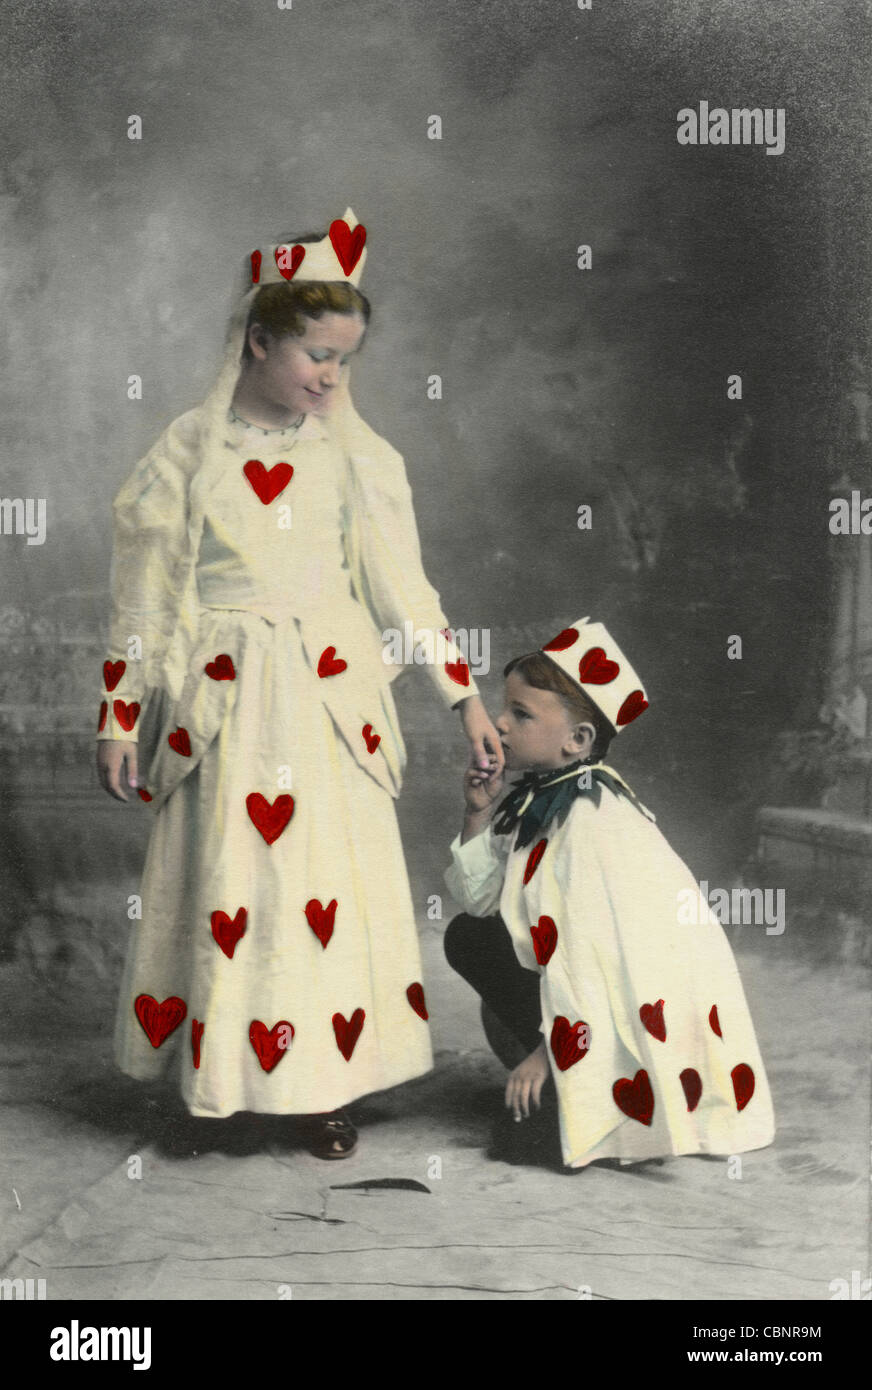 Little Valentine King Kisses the Hand of Valentine Queen - Stock Image